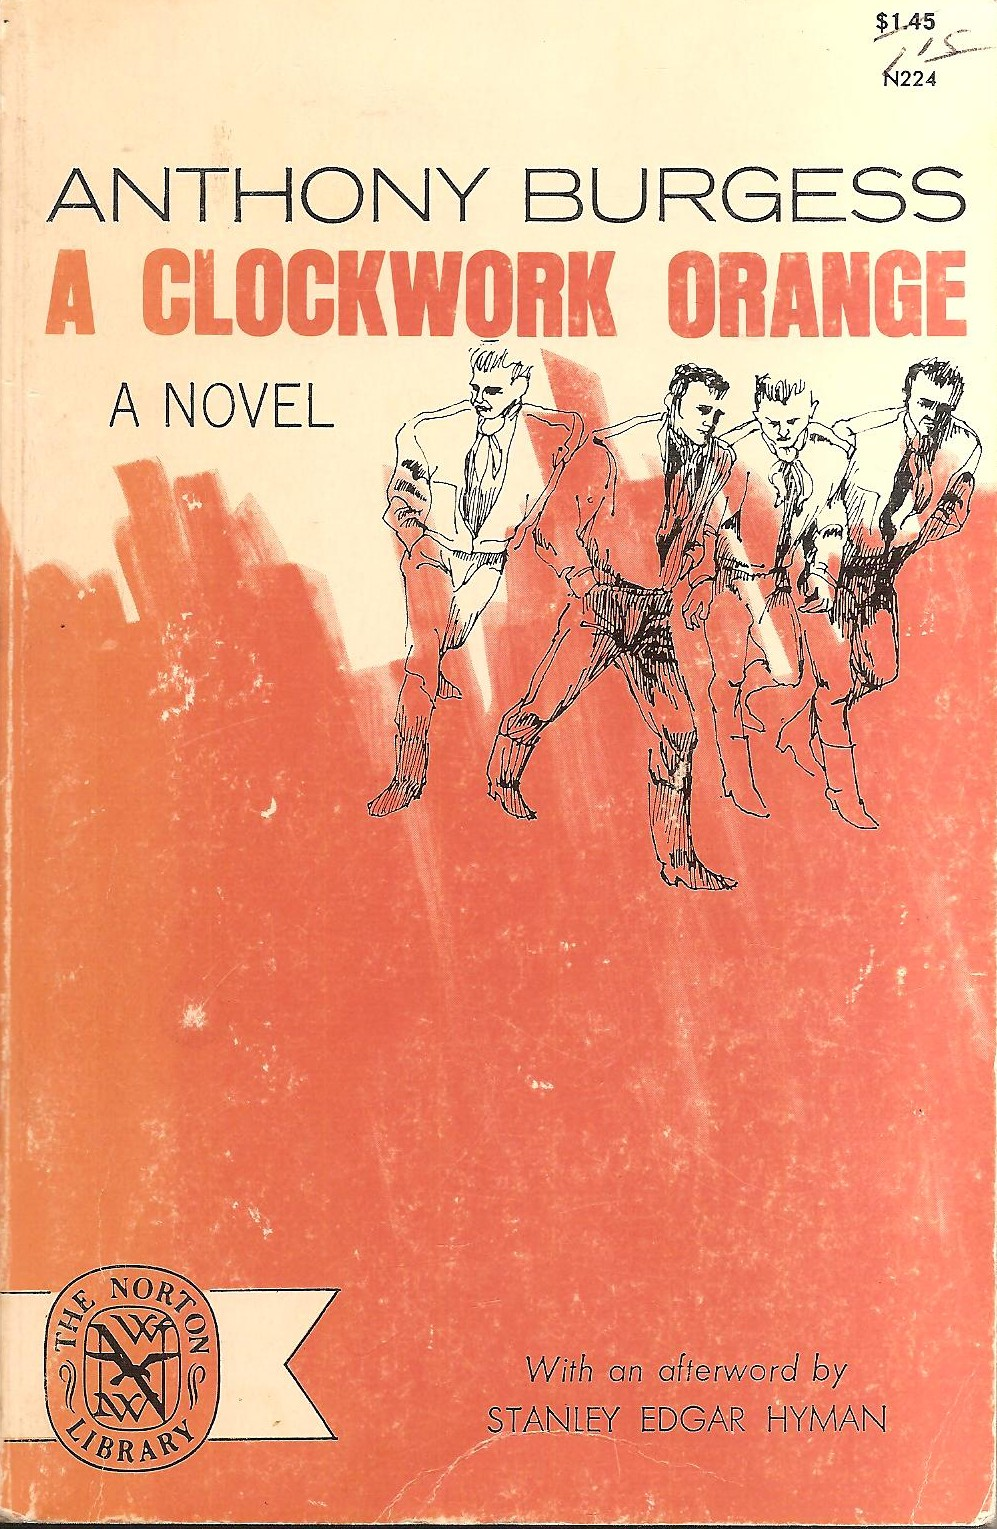 a clockwork orange by anthony burgess A clockwork orange has 489,896 ratings and 10,793 reviews martine said: a clockwork orange is one of those books which everyone has heard of but which f.